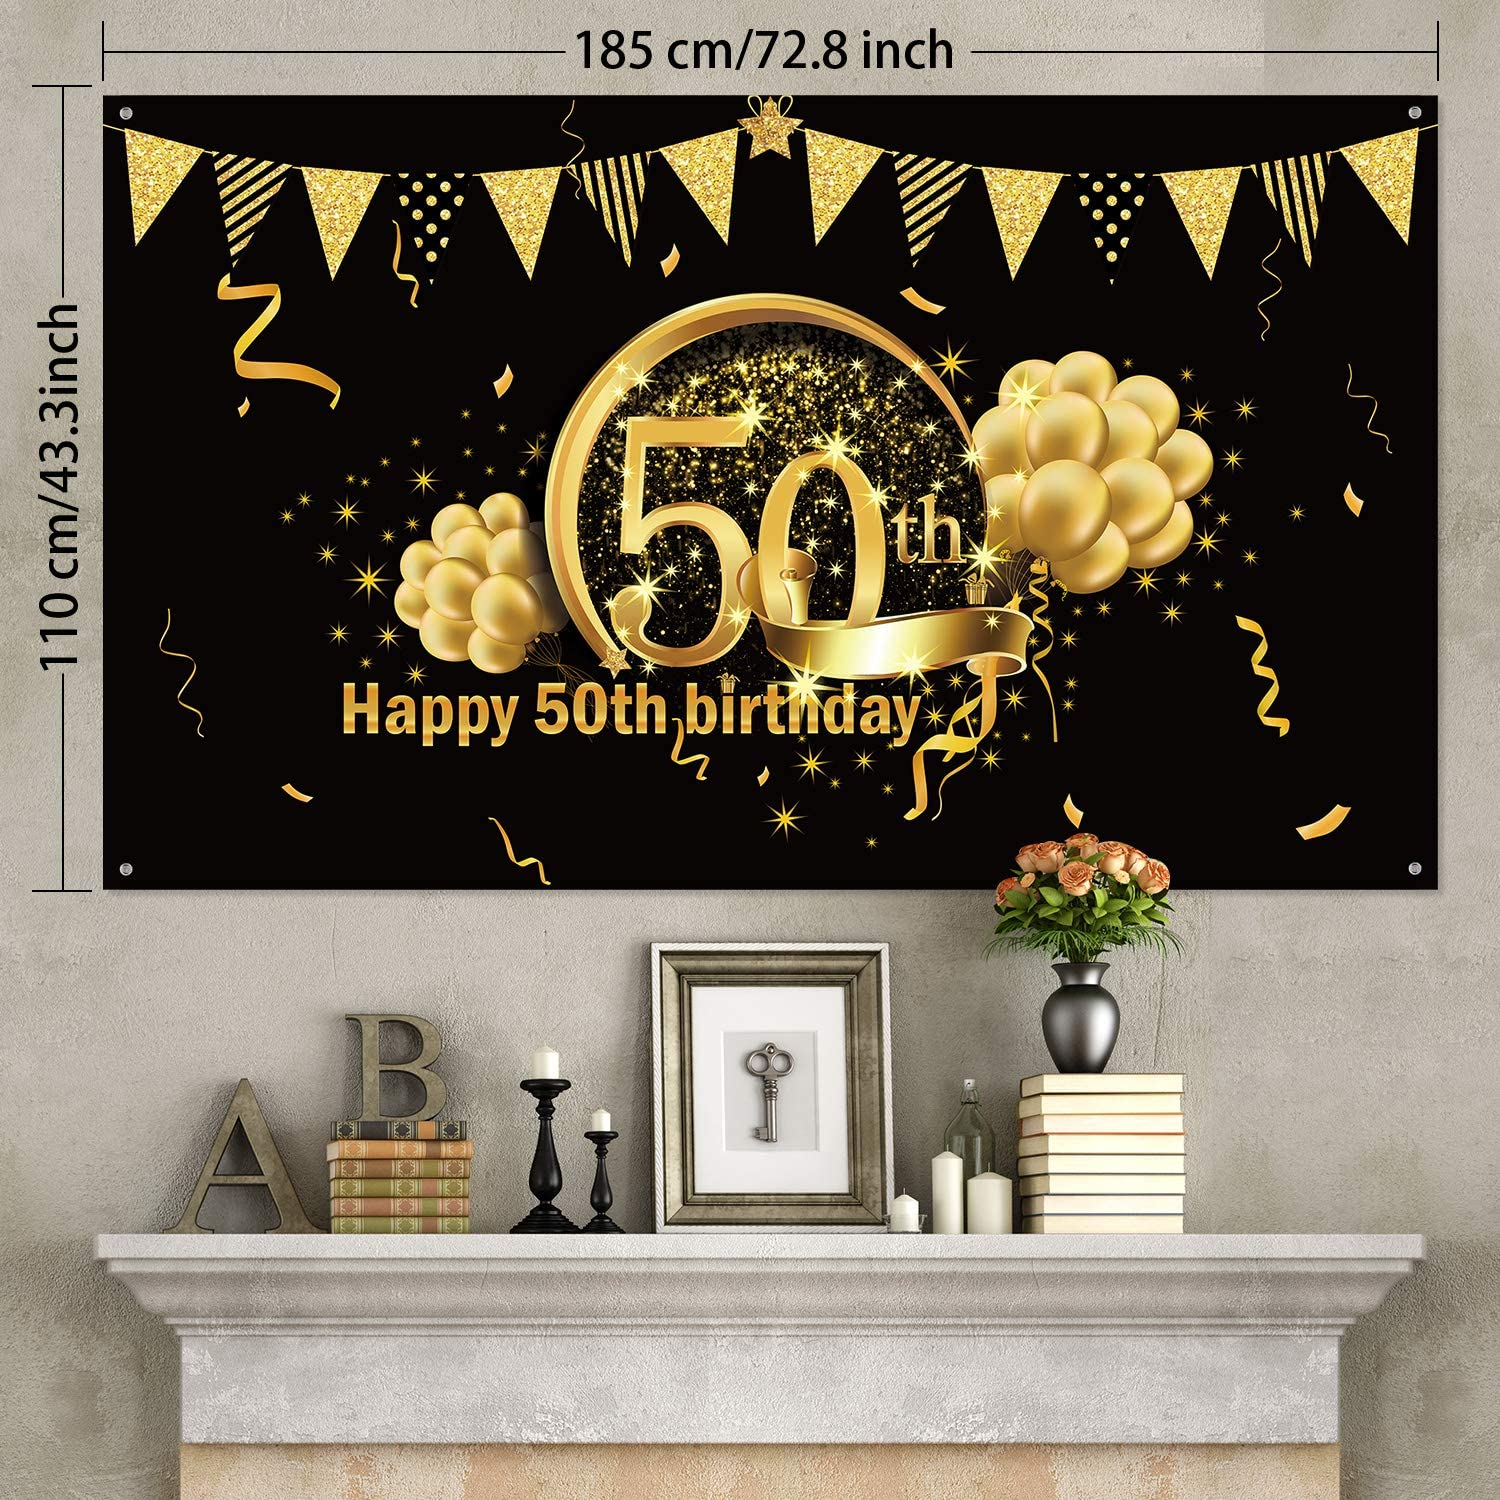 50th Birthday Party Decorative Door Cover Photo Booth Backdrop Background Banner for 50 Birthday Party Favor and Supplies Large Black /& Gold Happy 50th Birthday Door Banner Sign